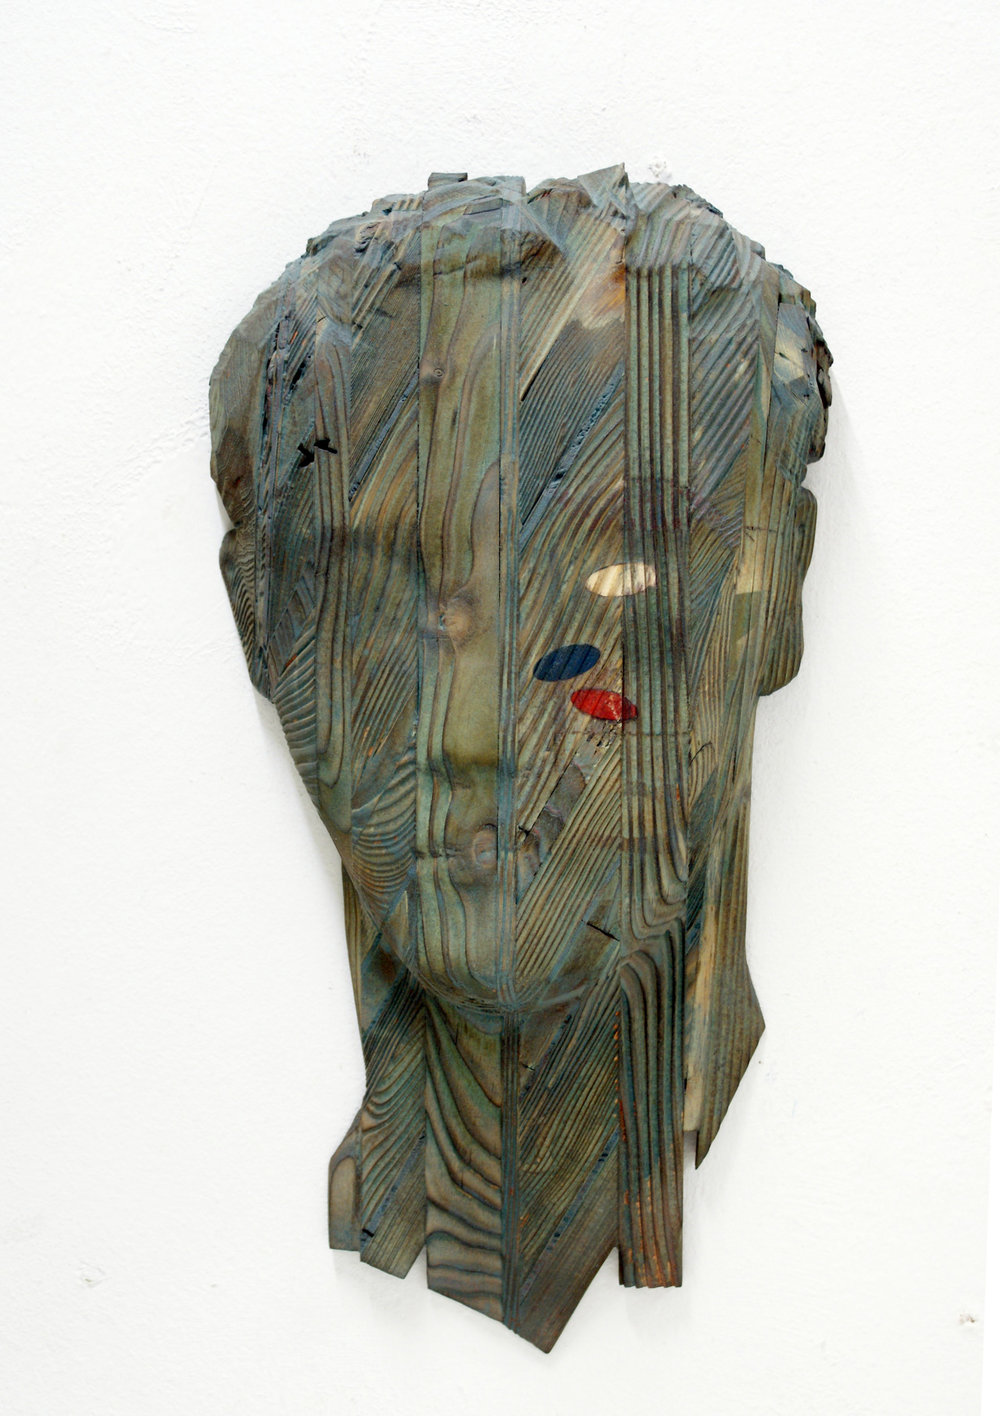 scopeartshow :      ‪#‎SCOPEBasel‬  2015 | Exhibitor Highlights | Newsletter No. 02  [REINHARD VOSS, In the Woods, 2011, mixed media on wood] Courtesy of  L'Inlassable Galerie   Read the newsletter at  http://conta.cc/1IB7PEp